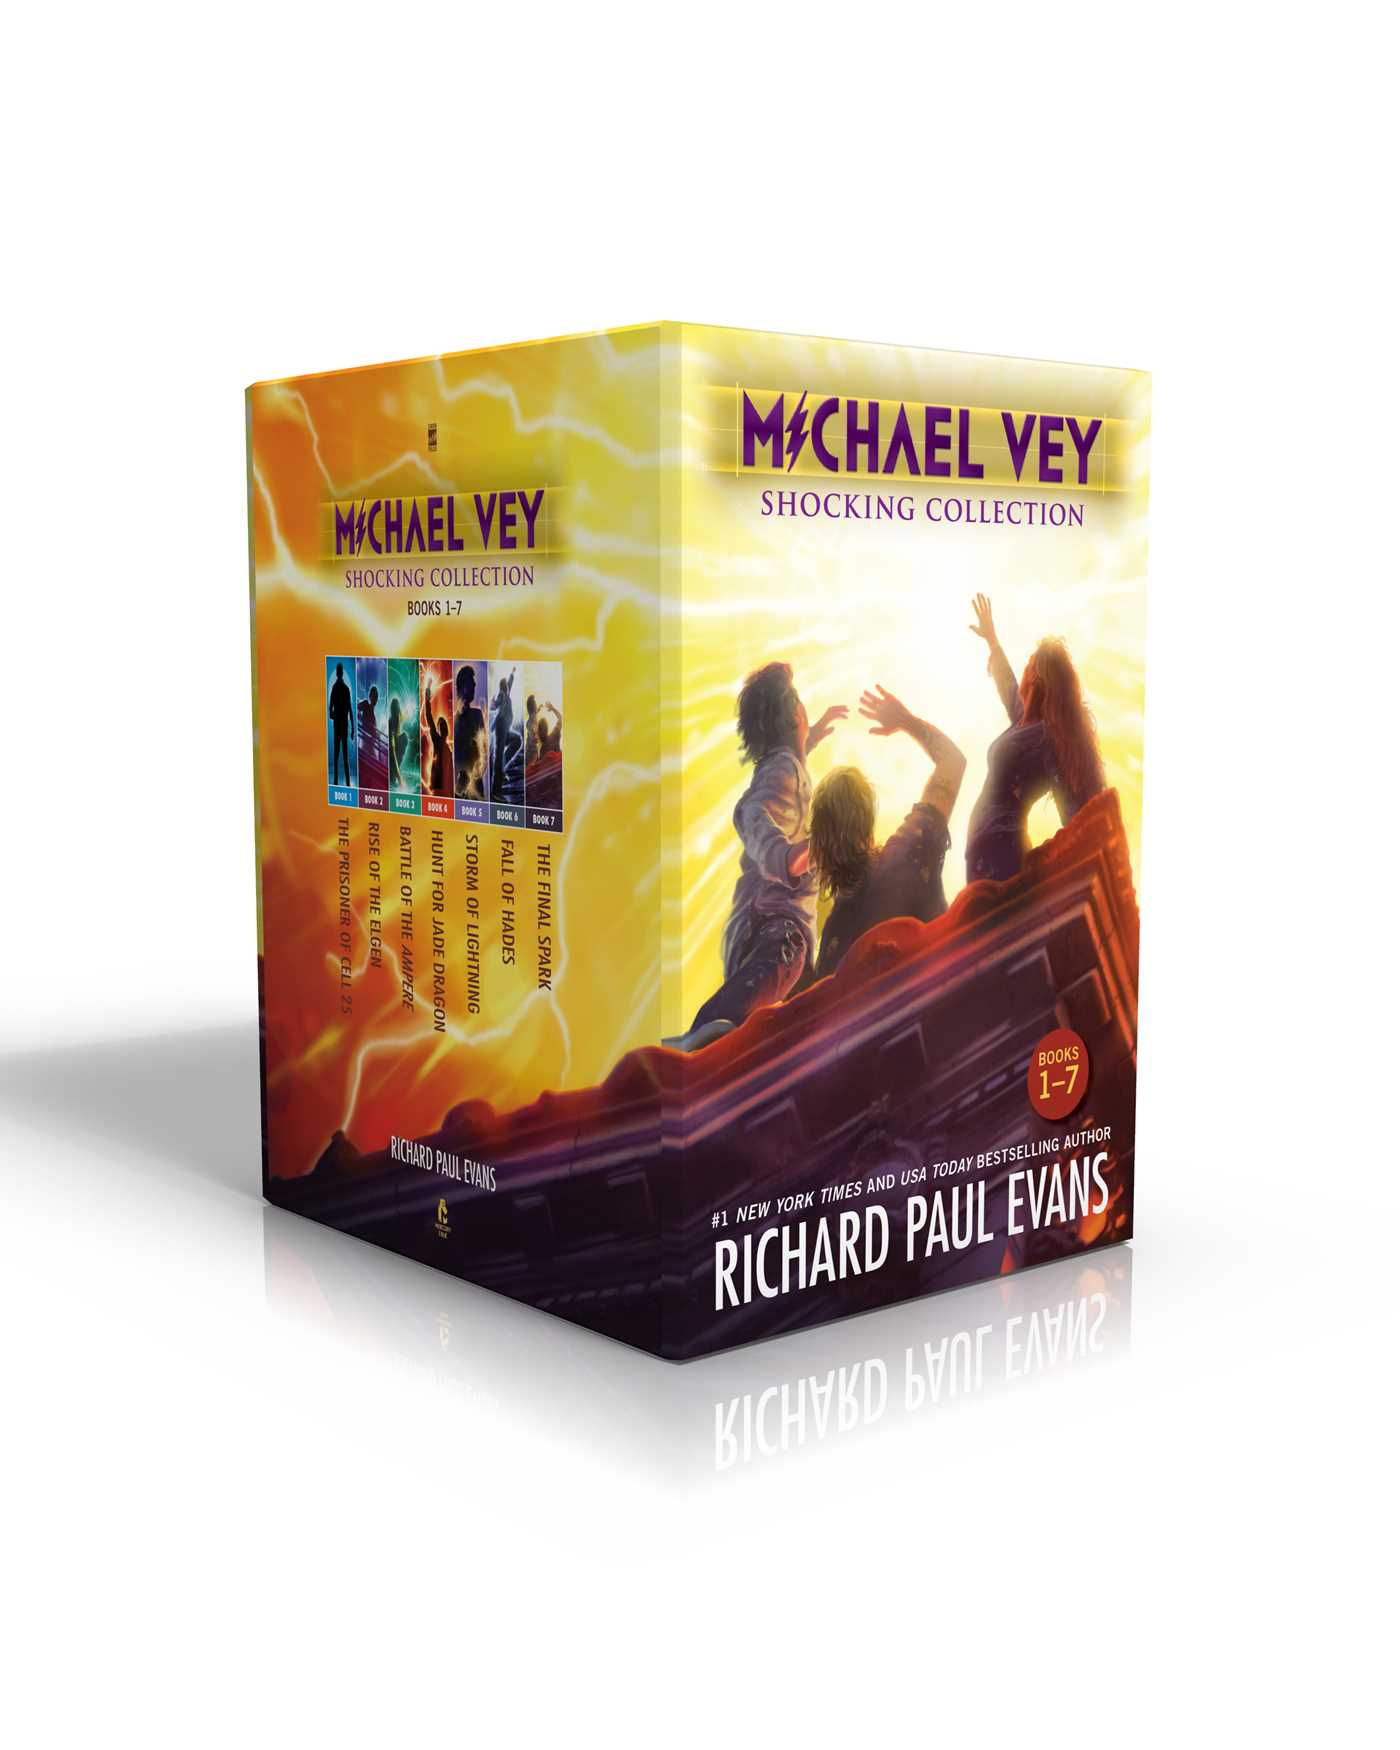 Michael vey shocking collection books 1 7 9781534400078 hr